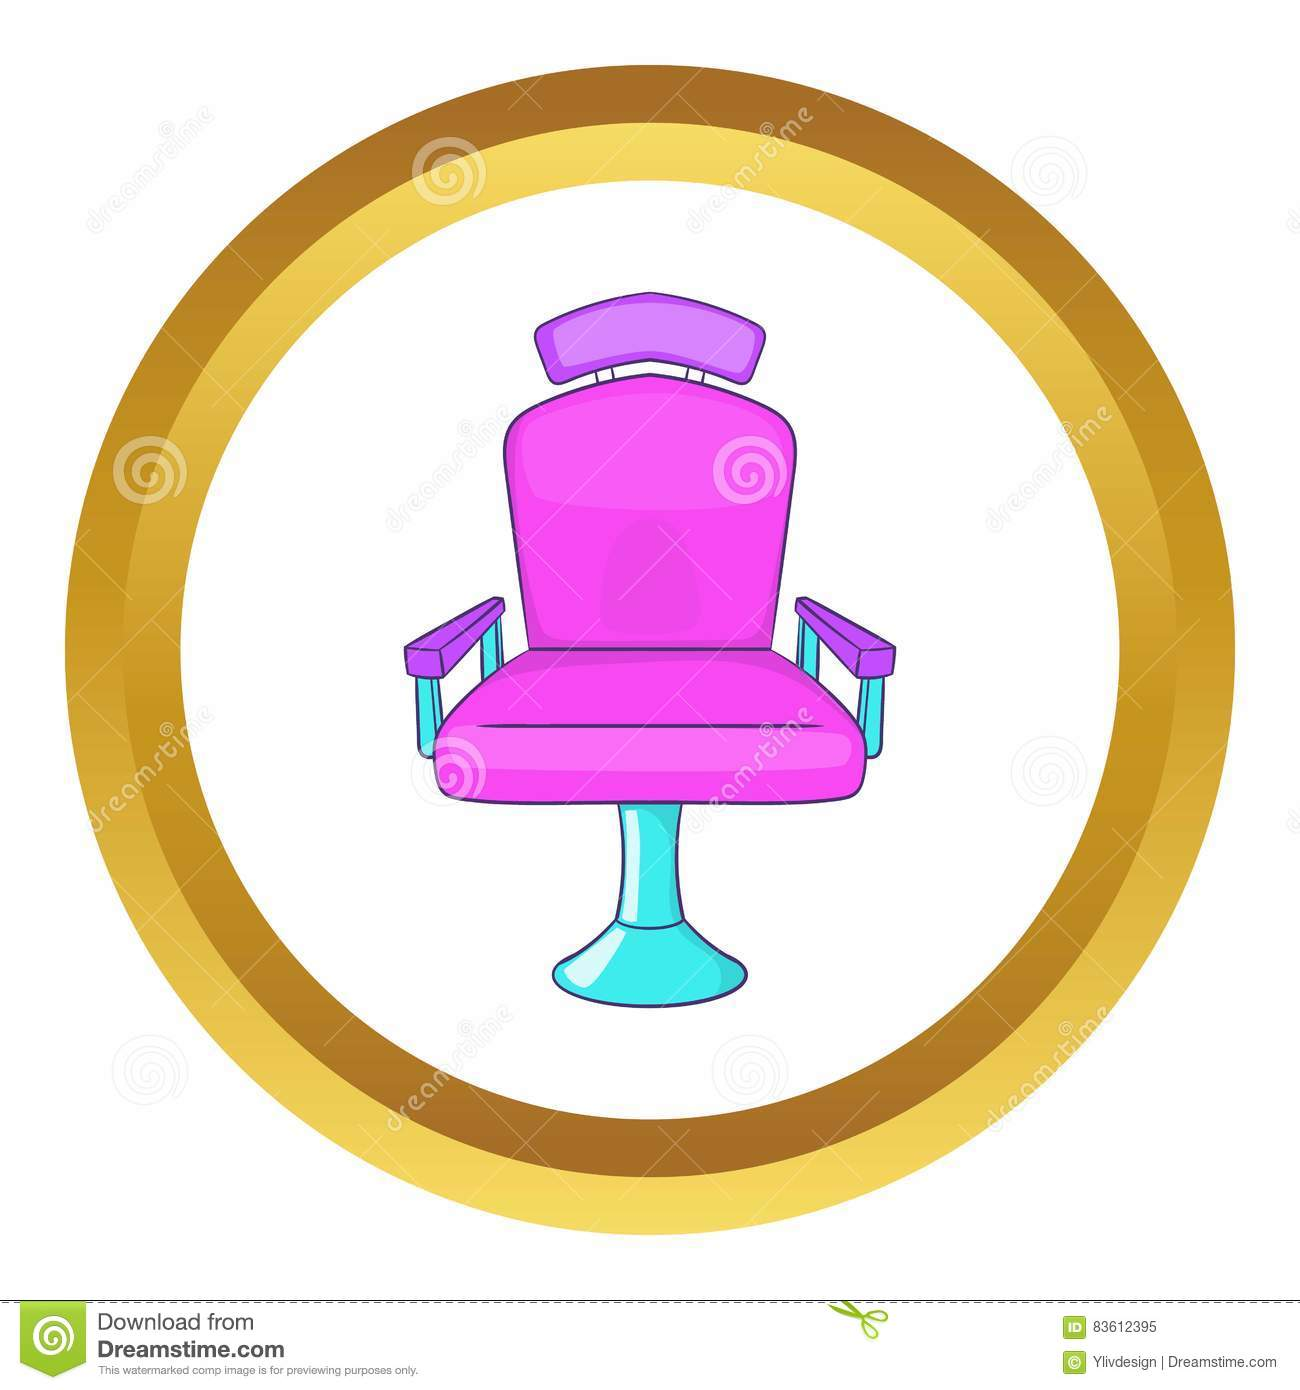 Barber chair vector - Barber Chair Vector Icon